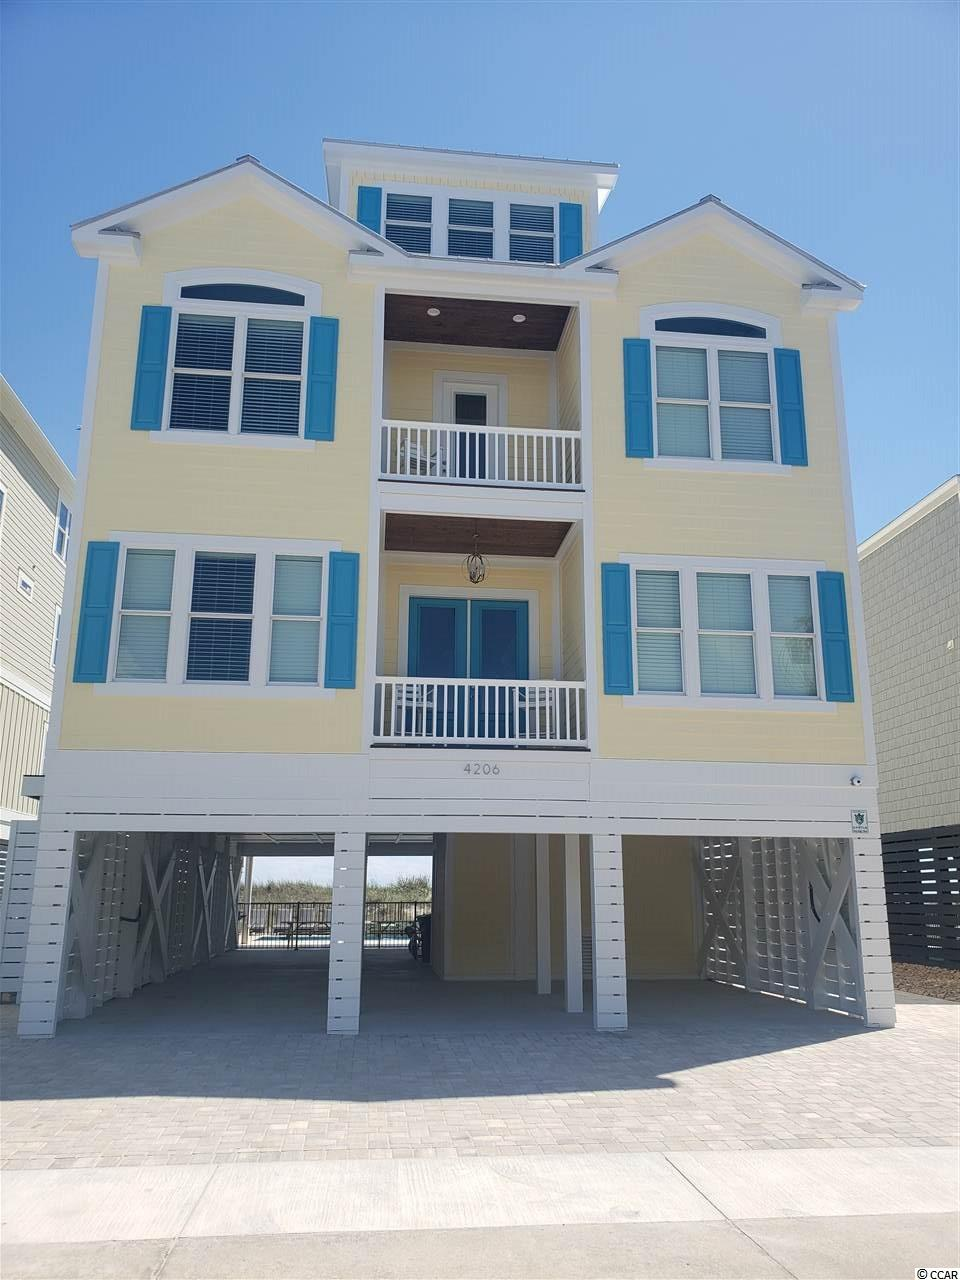 4206 N Ocean Blvd., North Myrtle Beach, South Carolina